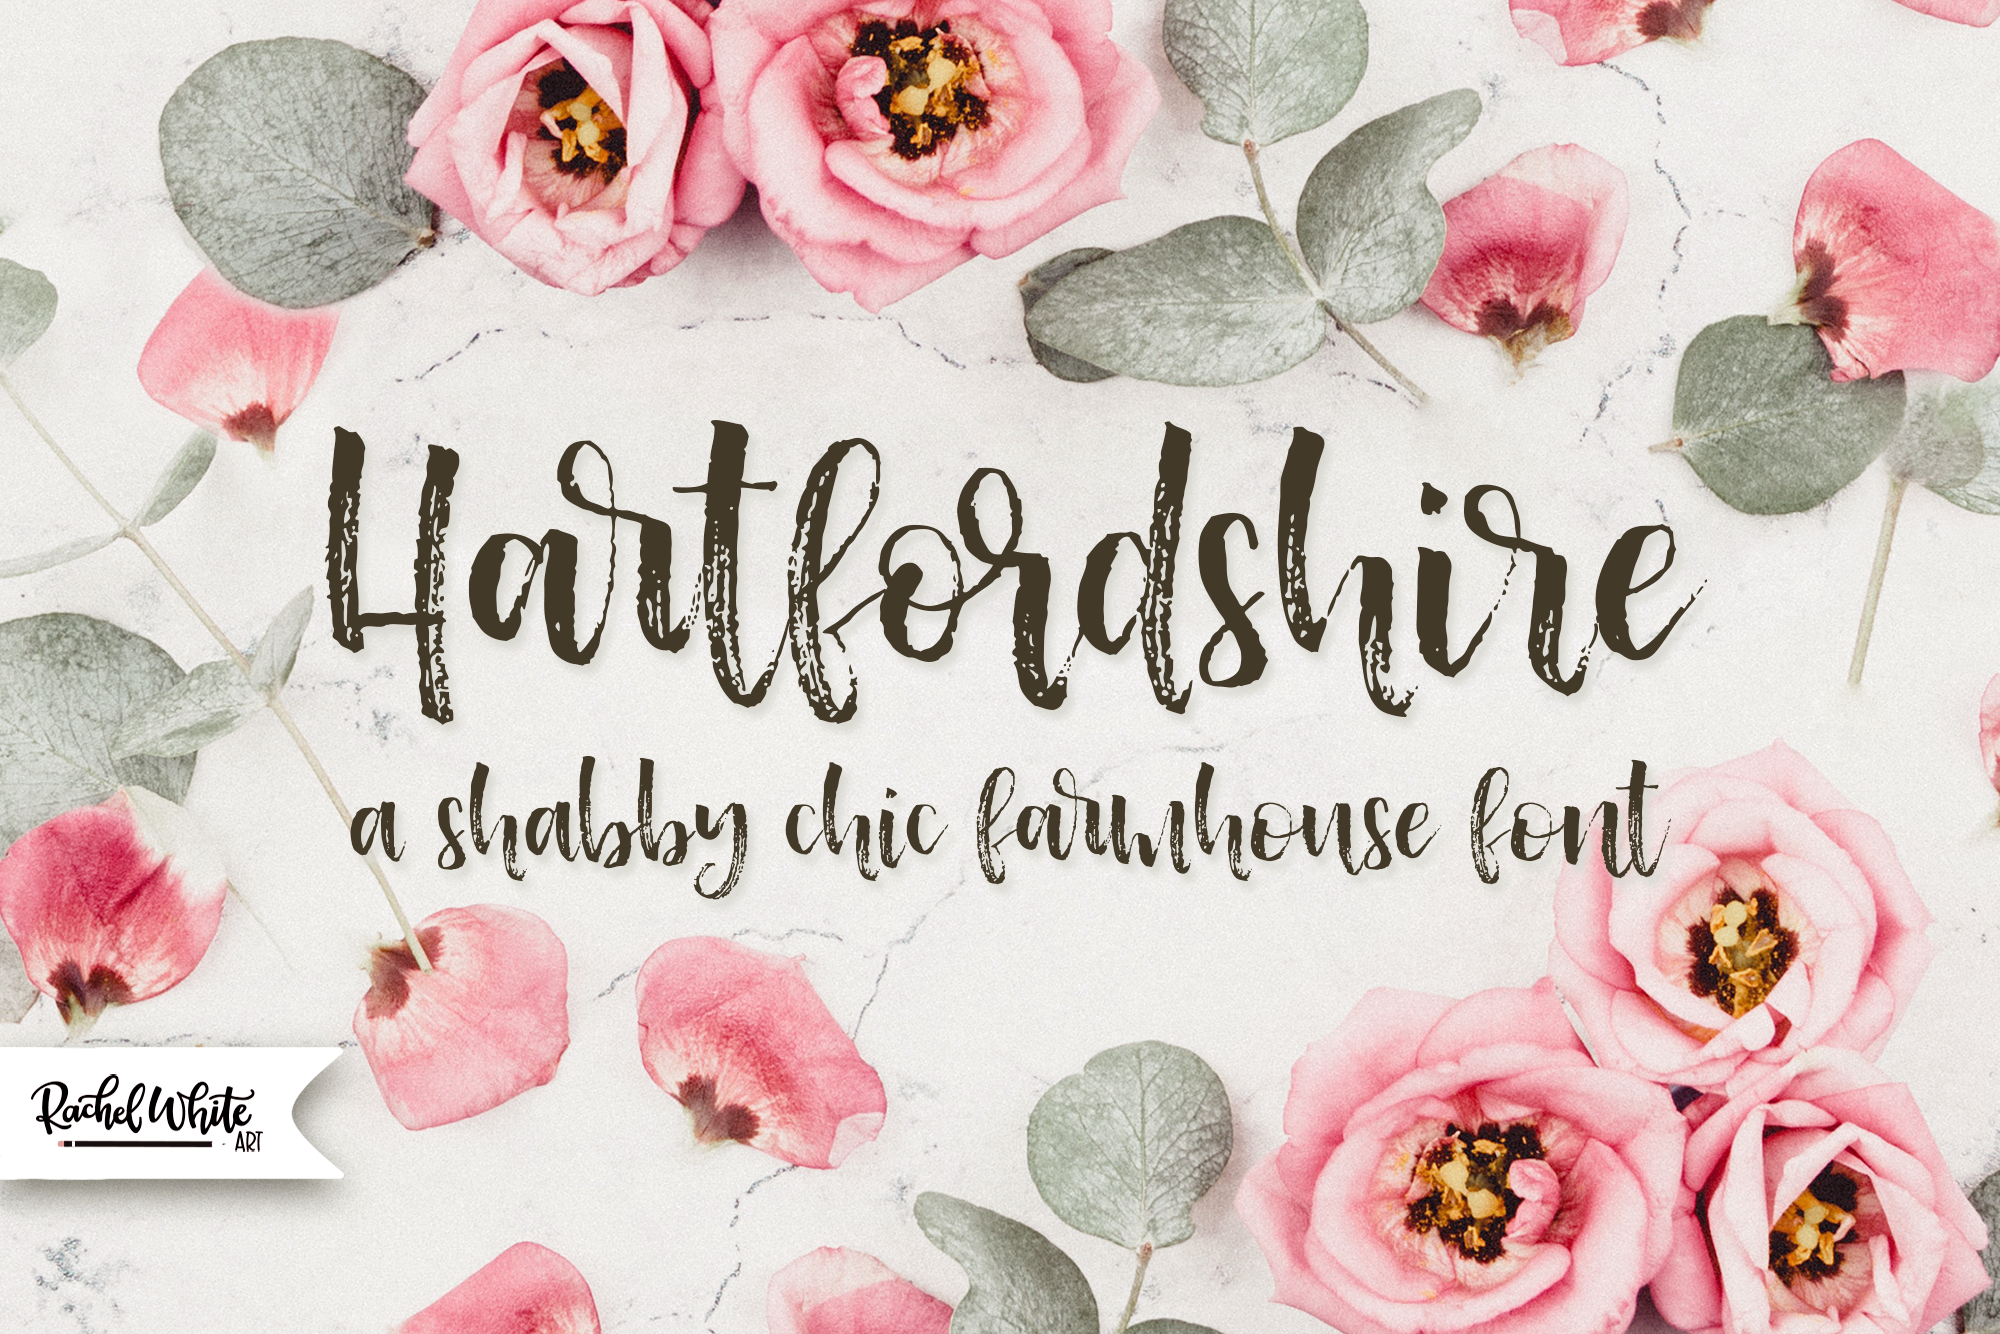 Hartfordshire, a shabby chic farmhouse font example image 4